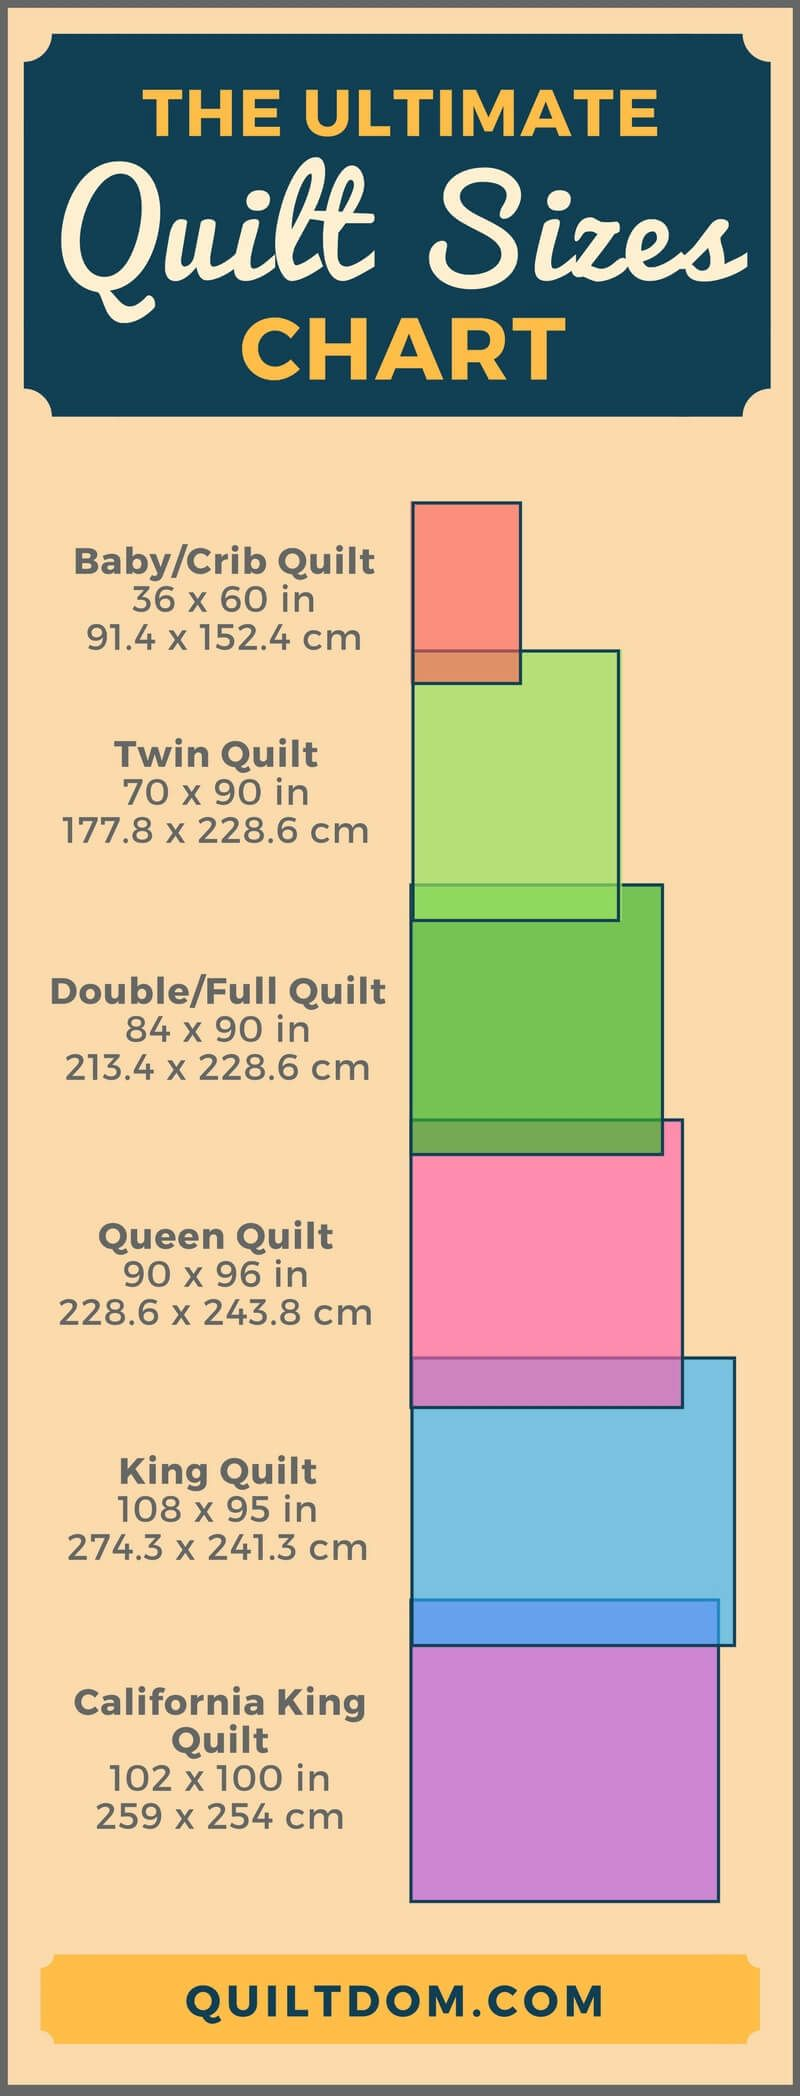 In This Article You Ll Get A Description Along With Dimensions Of Every Quilt Size You Also Get A Printable Qui Quilt Size Charts Quilt Sizes Quilt Size Chart